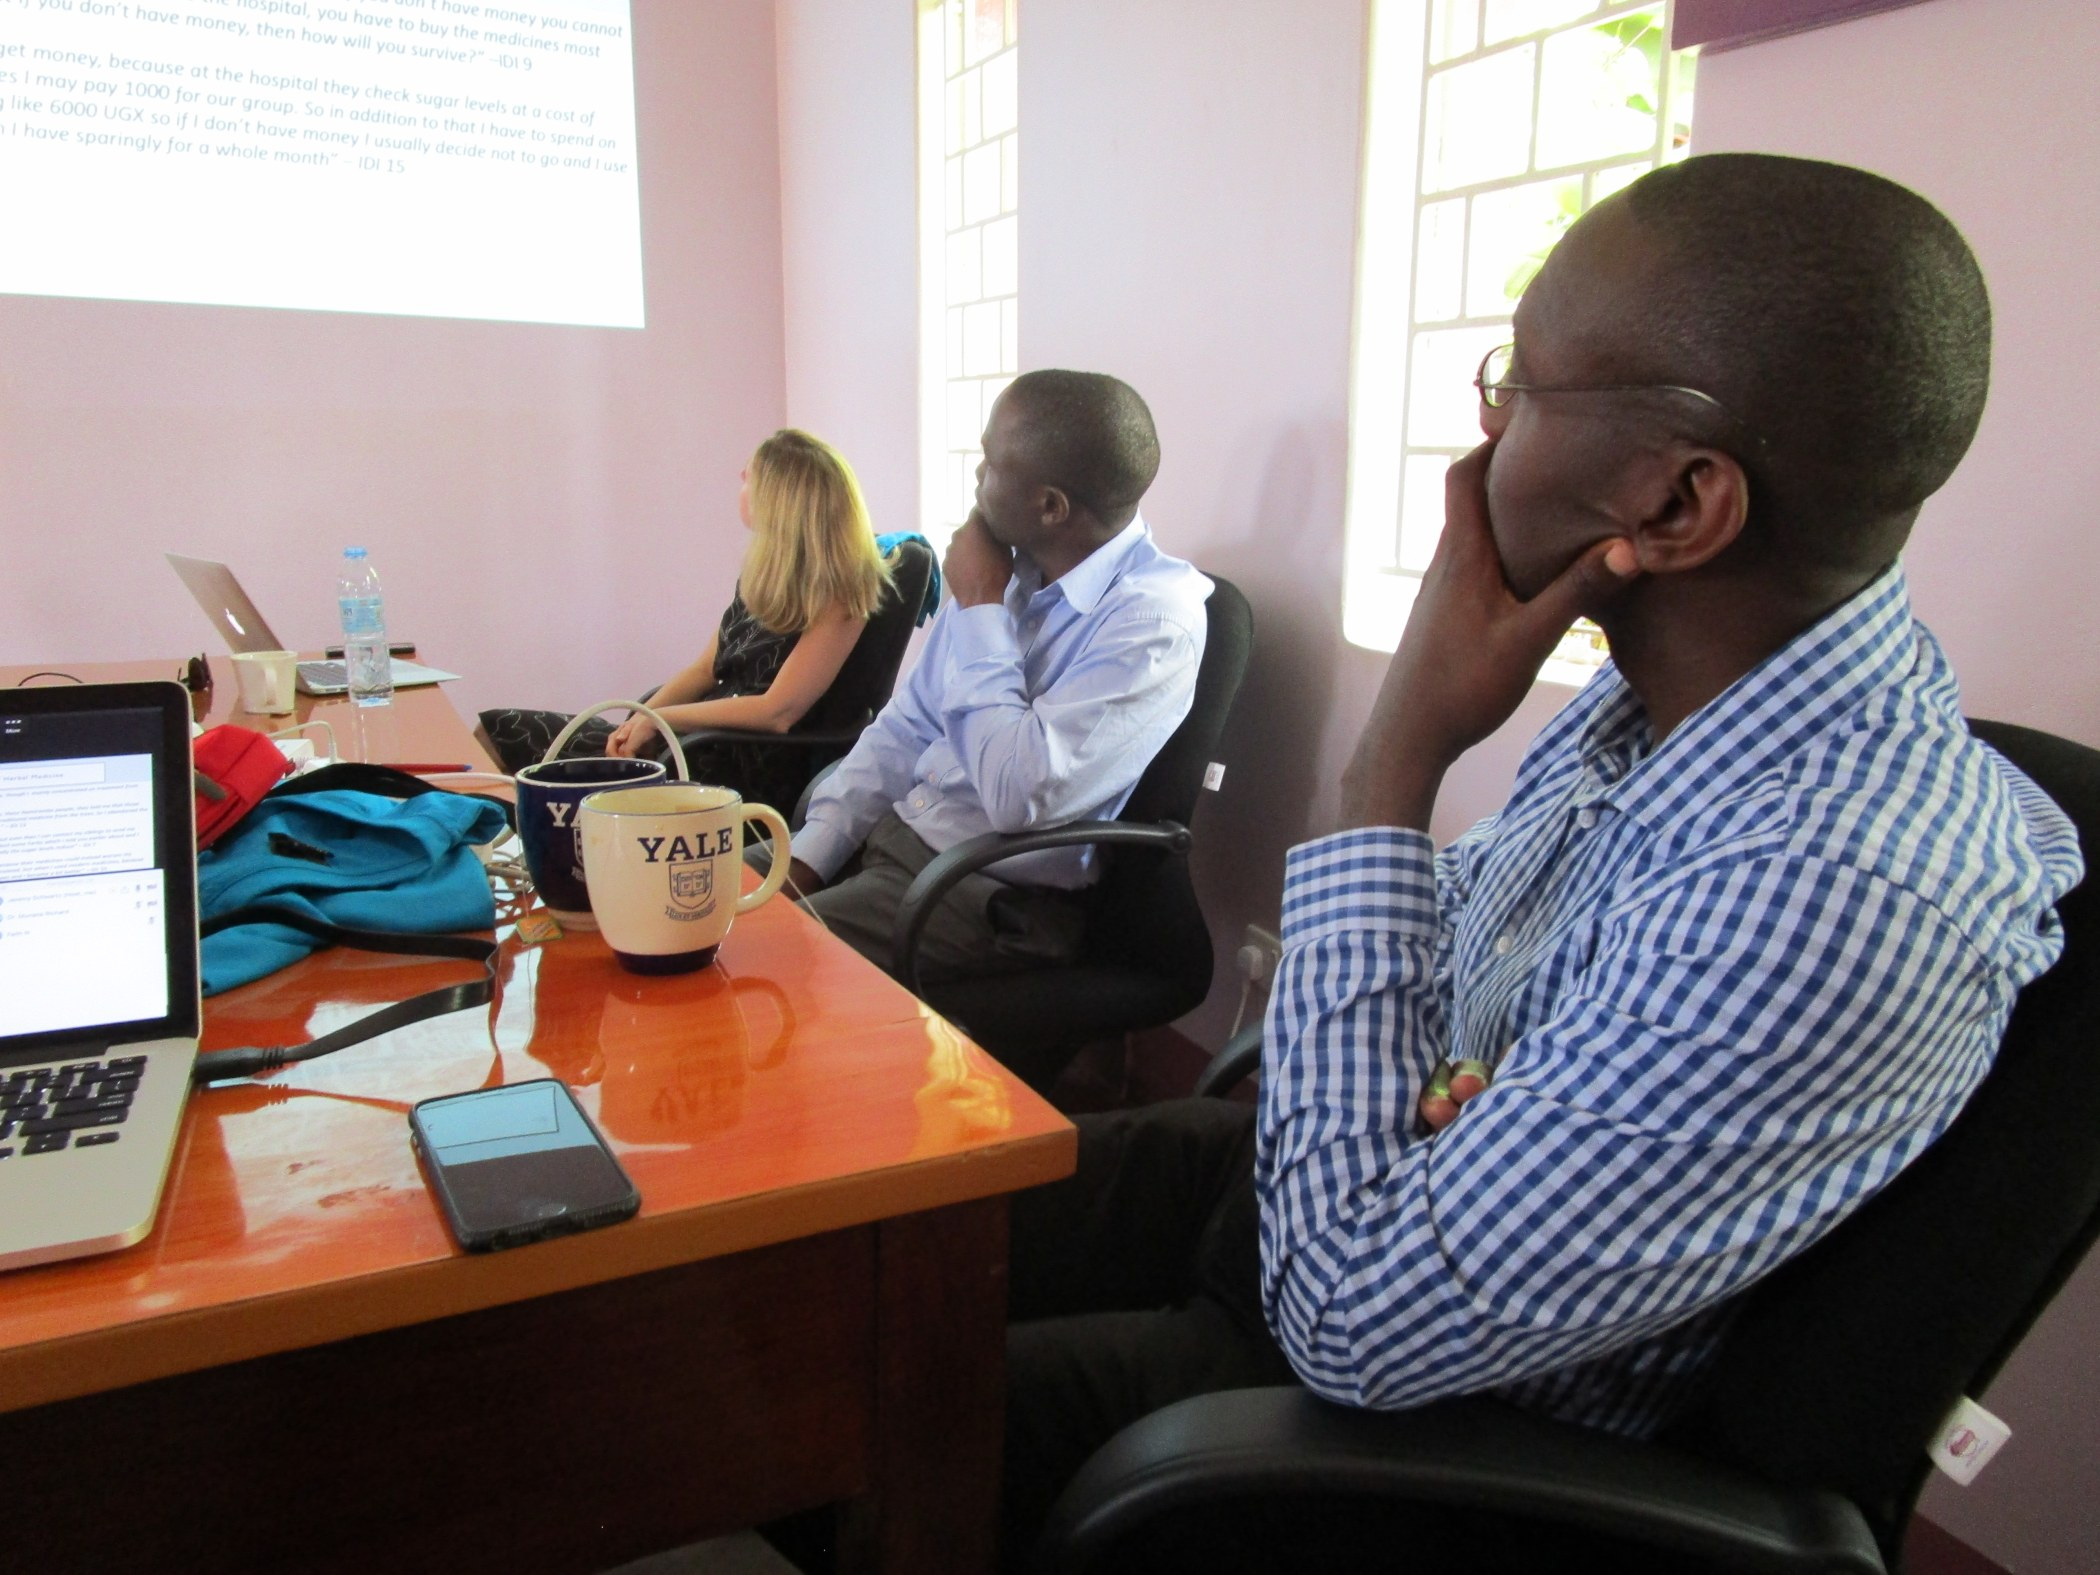 Drs. Robert Kalyesubula (right), Isaac Ssinabulya (middle) and NGN collaborator Mari Armstrong Hough, PhD (left) listen to a presentation of data by NGN fellow Andrew Tusubira, MPH.